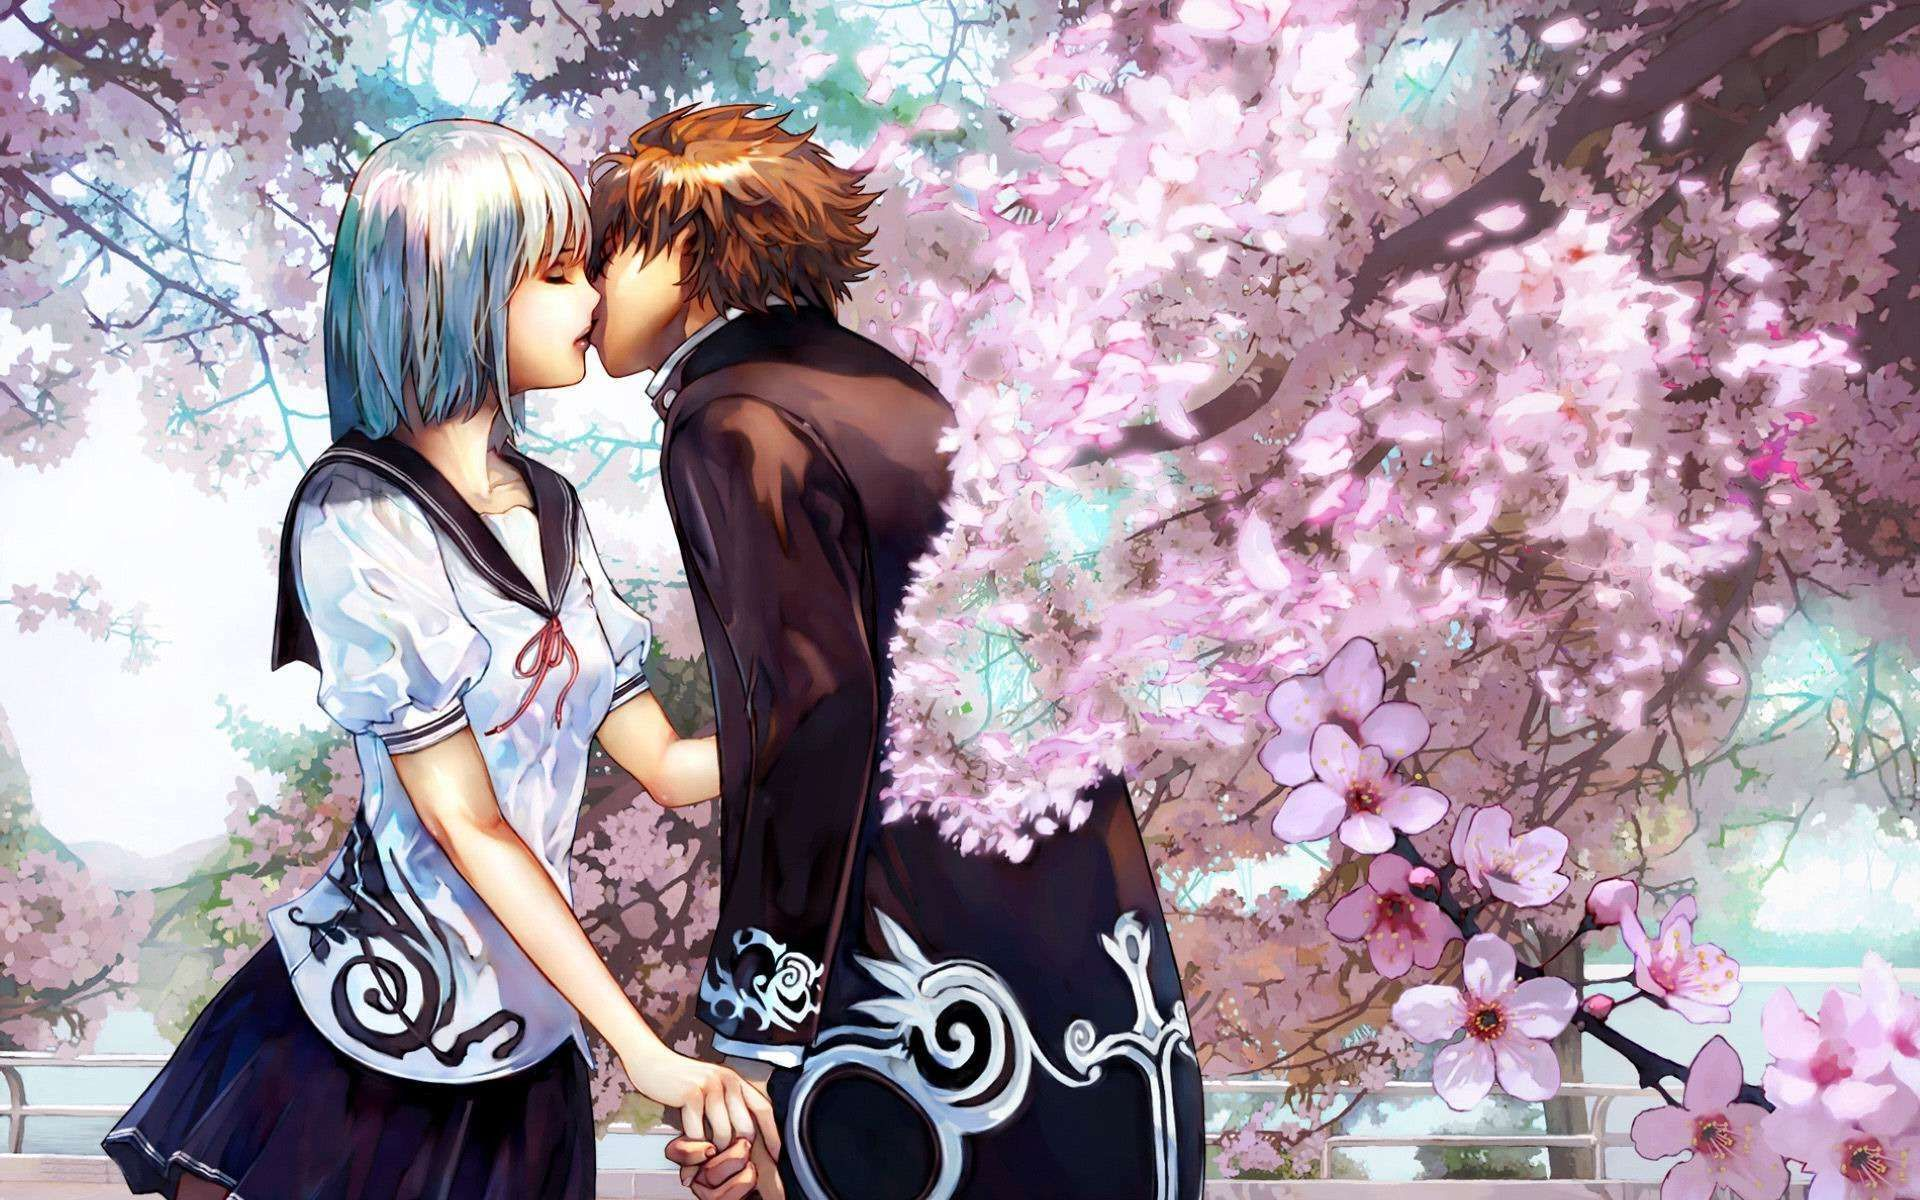 Anime People In Love Wallpaper Desktop (With images